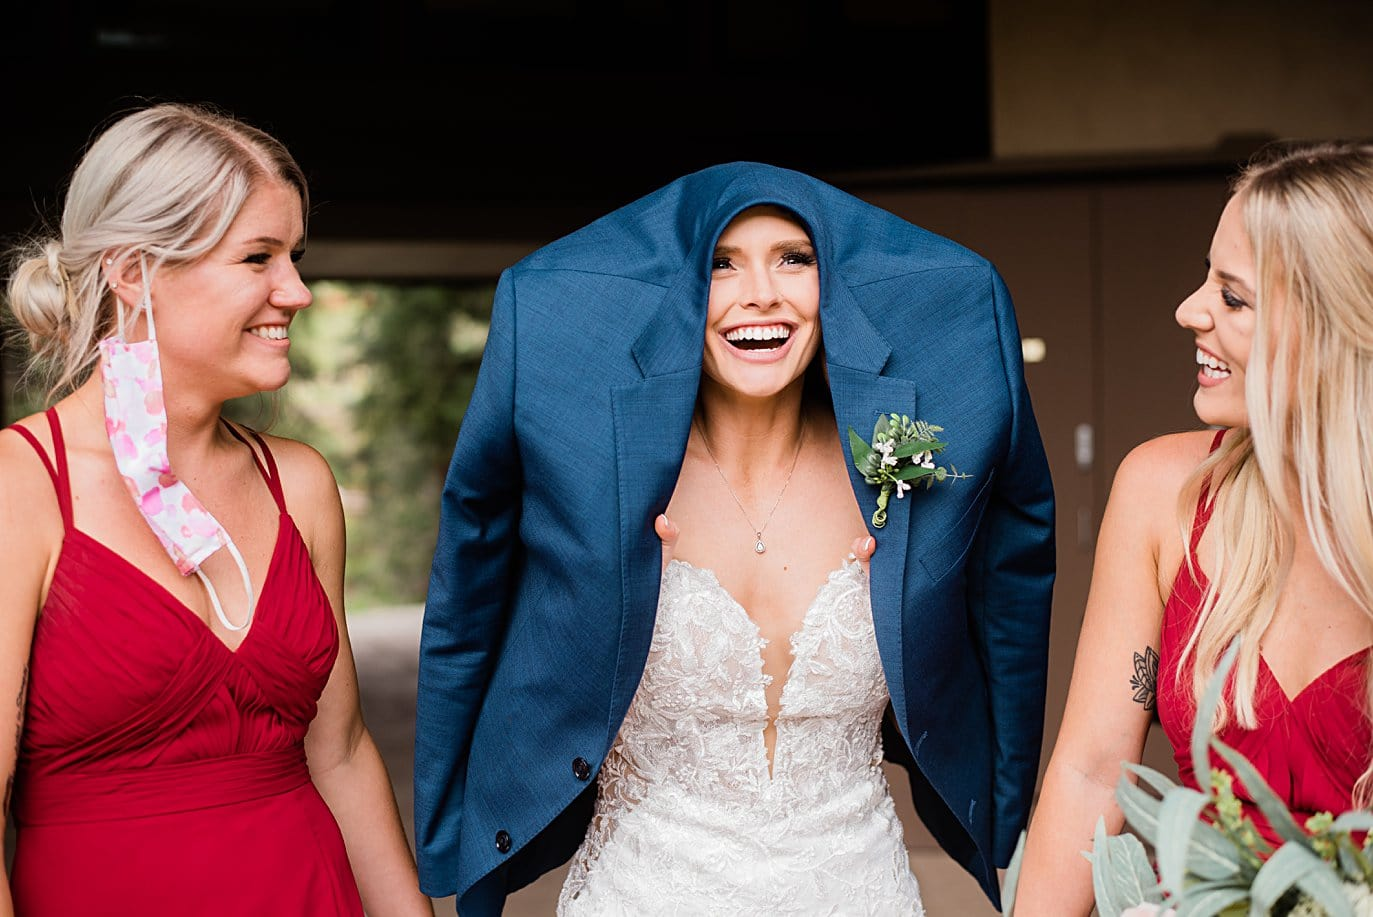 Bride shelters from rain under groom's coat while bridesmaids in masks look on at Vail Manor Lodge wedding by Aspen wedding photographer Jennie Crate